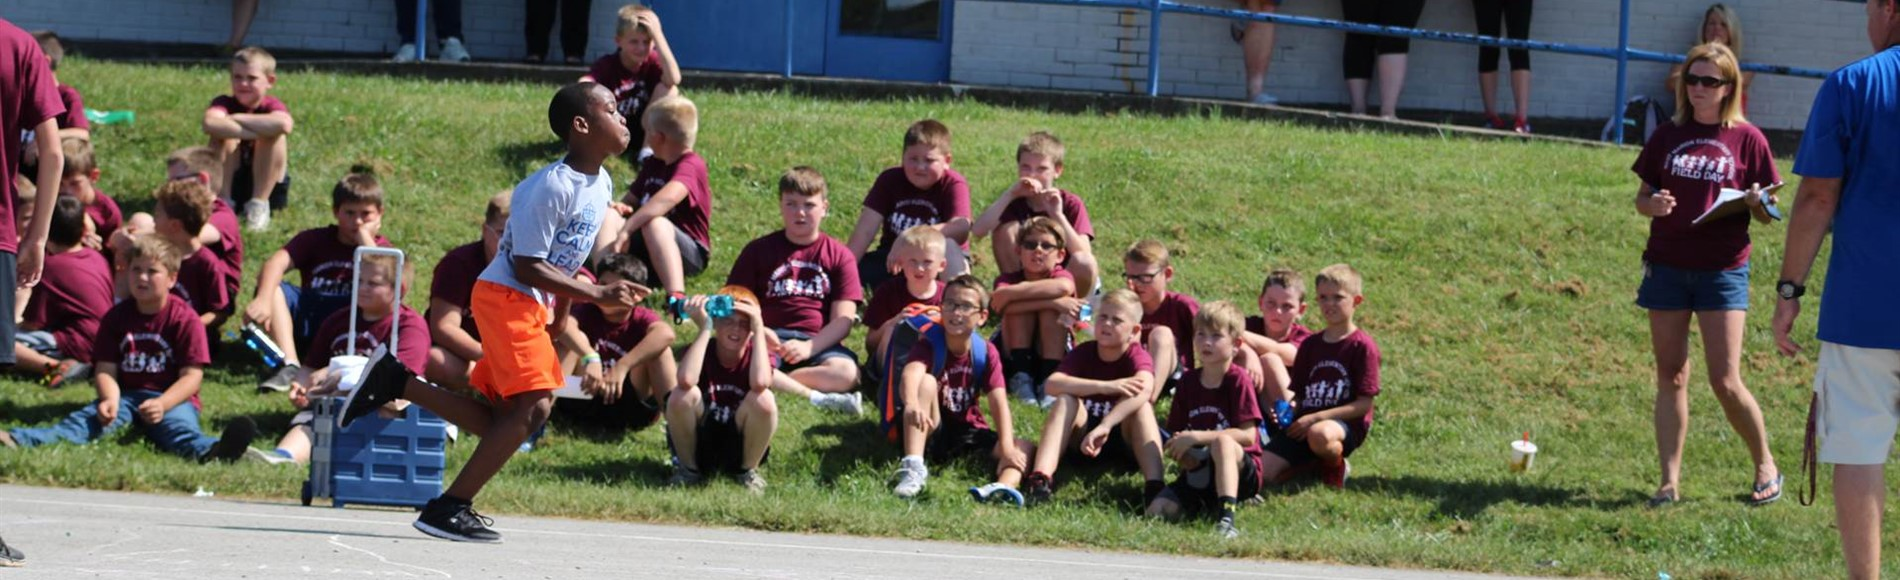 Students participated in Field Day at Glasscock Elementary.